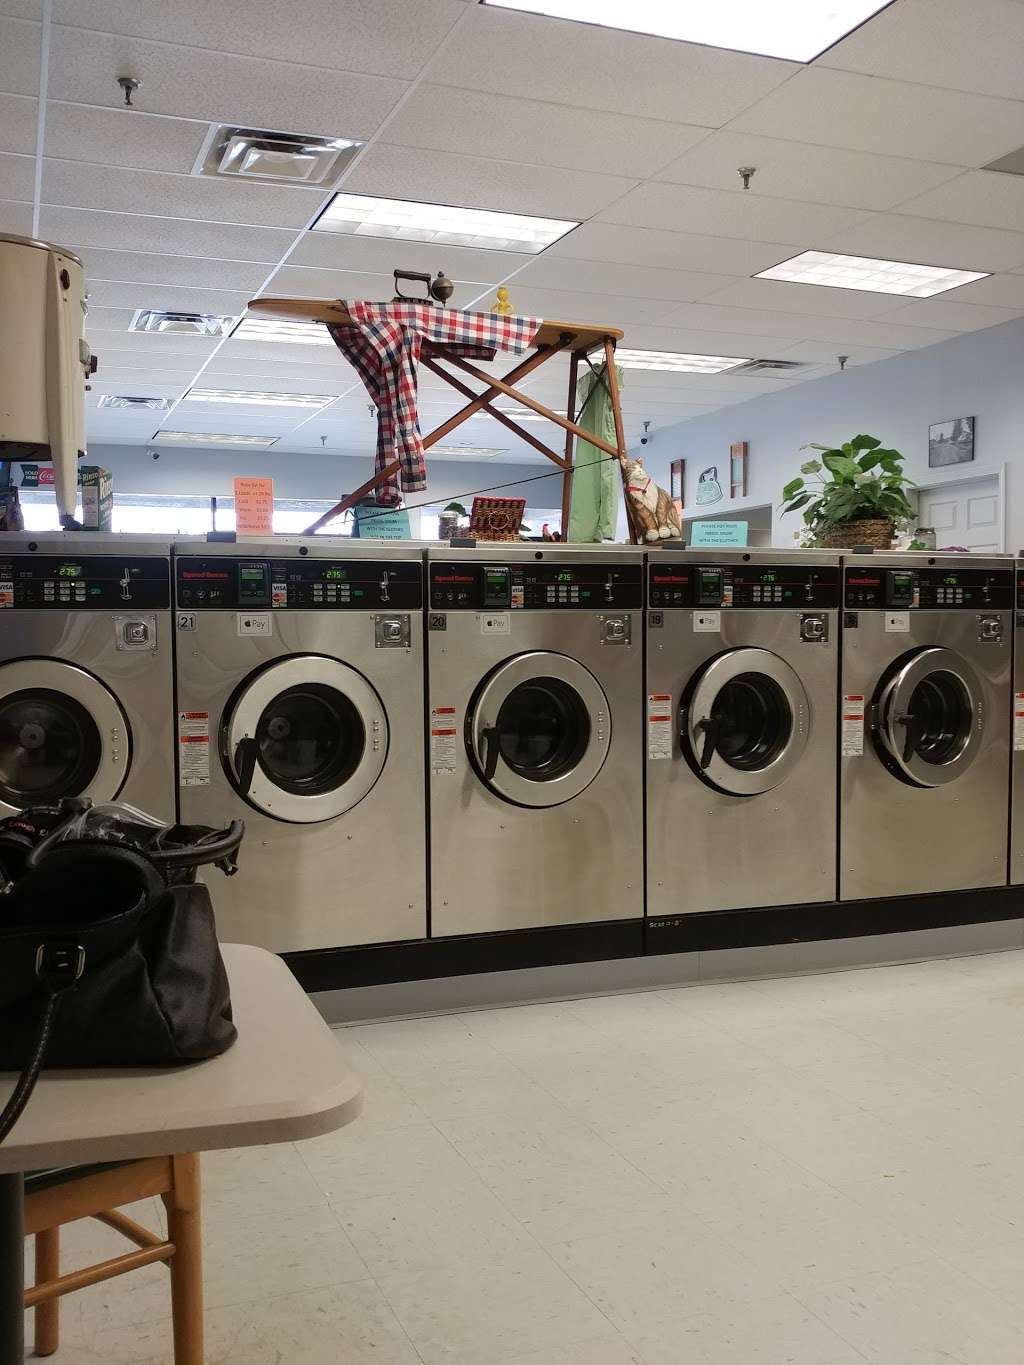 Merrimack Commons Laundromat - laundry  | Photo 3 of 10 | Address: 515 Daniel Webster Hwy, Merrimack, NH 03054, USA | Phone: (603) 262-5718